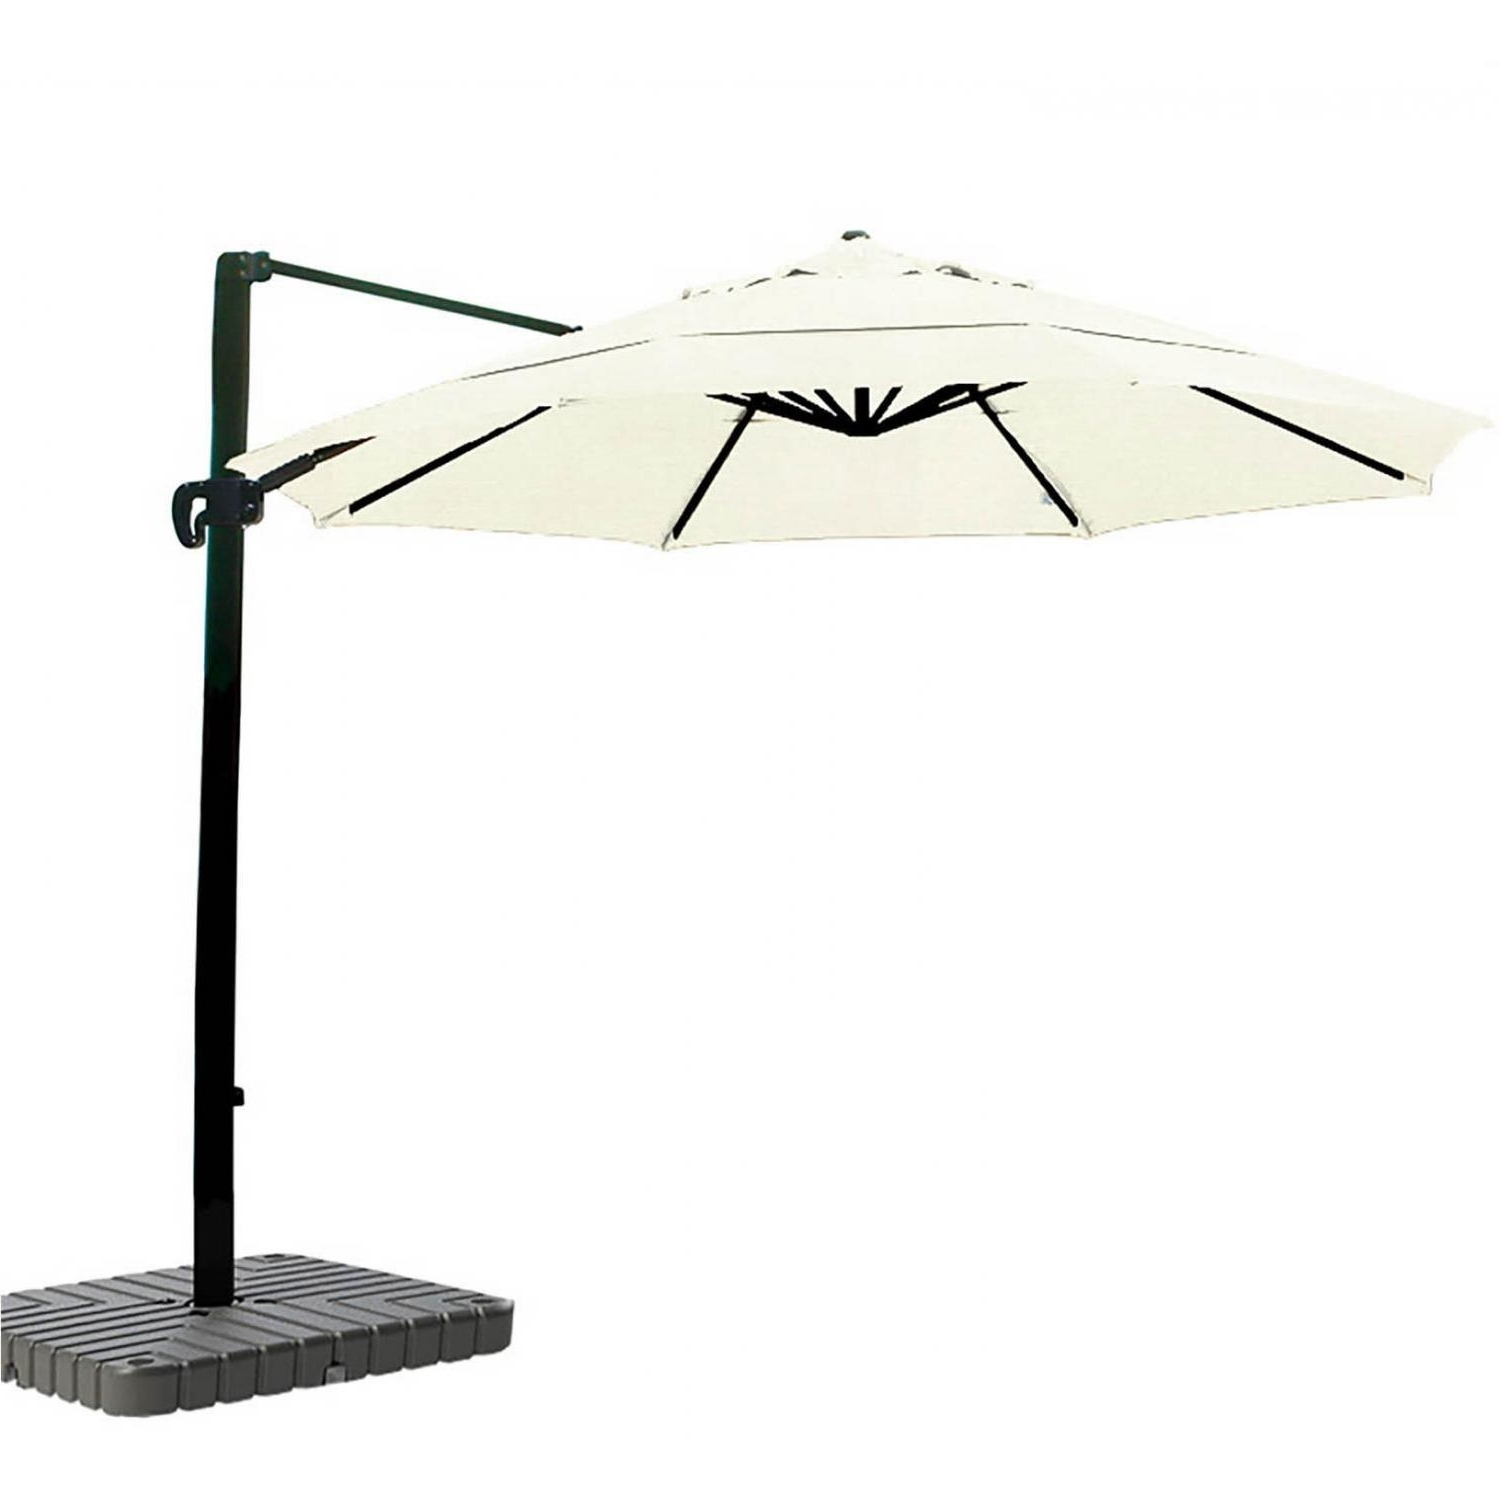 Current California Umbrella 11 Ft Octagonal Aluminum Multi Position Tilt For 11 Ft Patio Umbrellas (View 9 of 20)